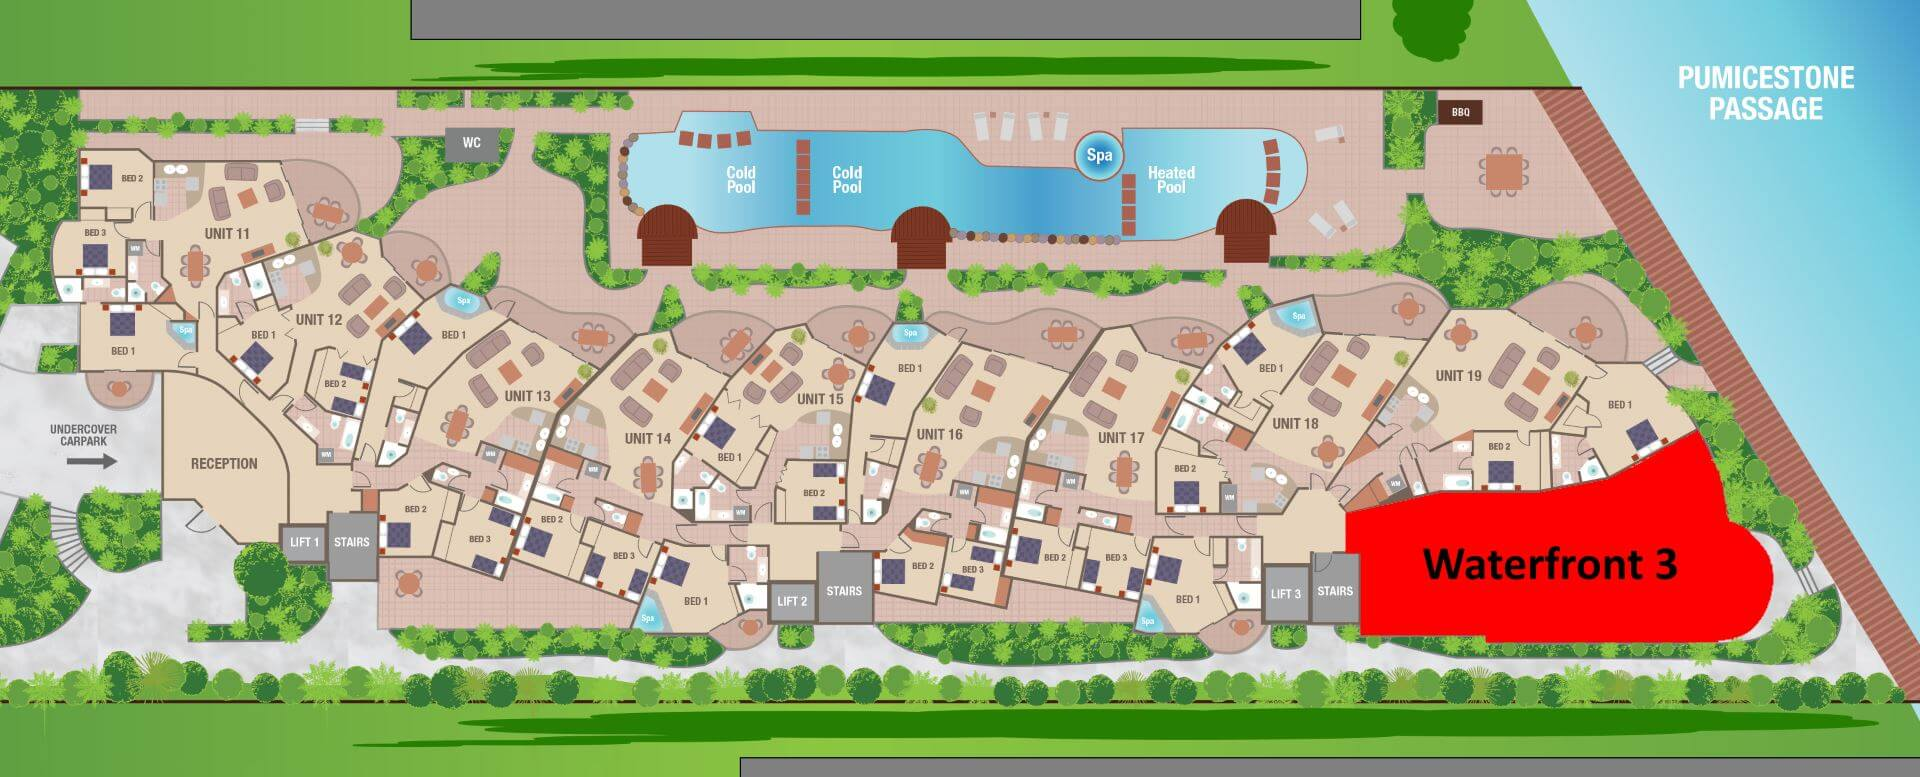 Waterfront 3 site plan